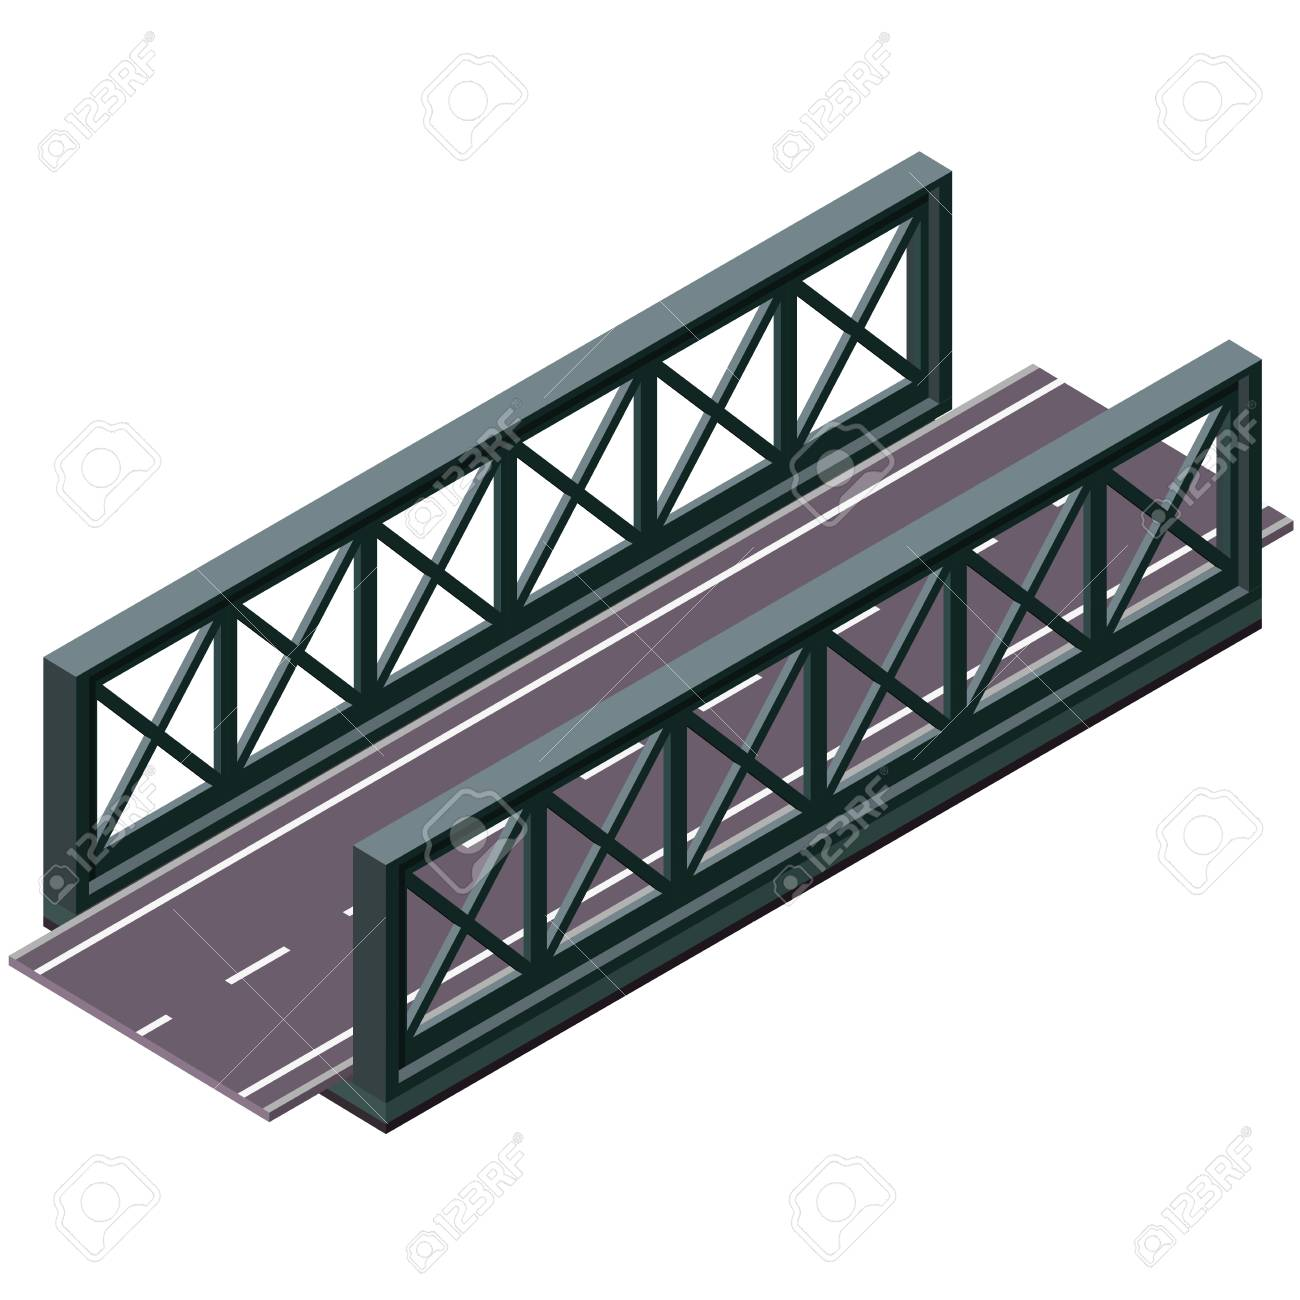 hight resolution of  vector clipart and illustrations 3d isolated on white background industrial transportation building metallic architecture asphalt road steel bridge